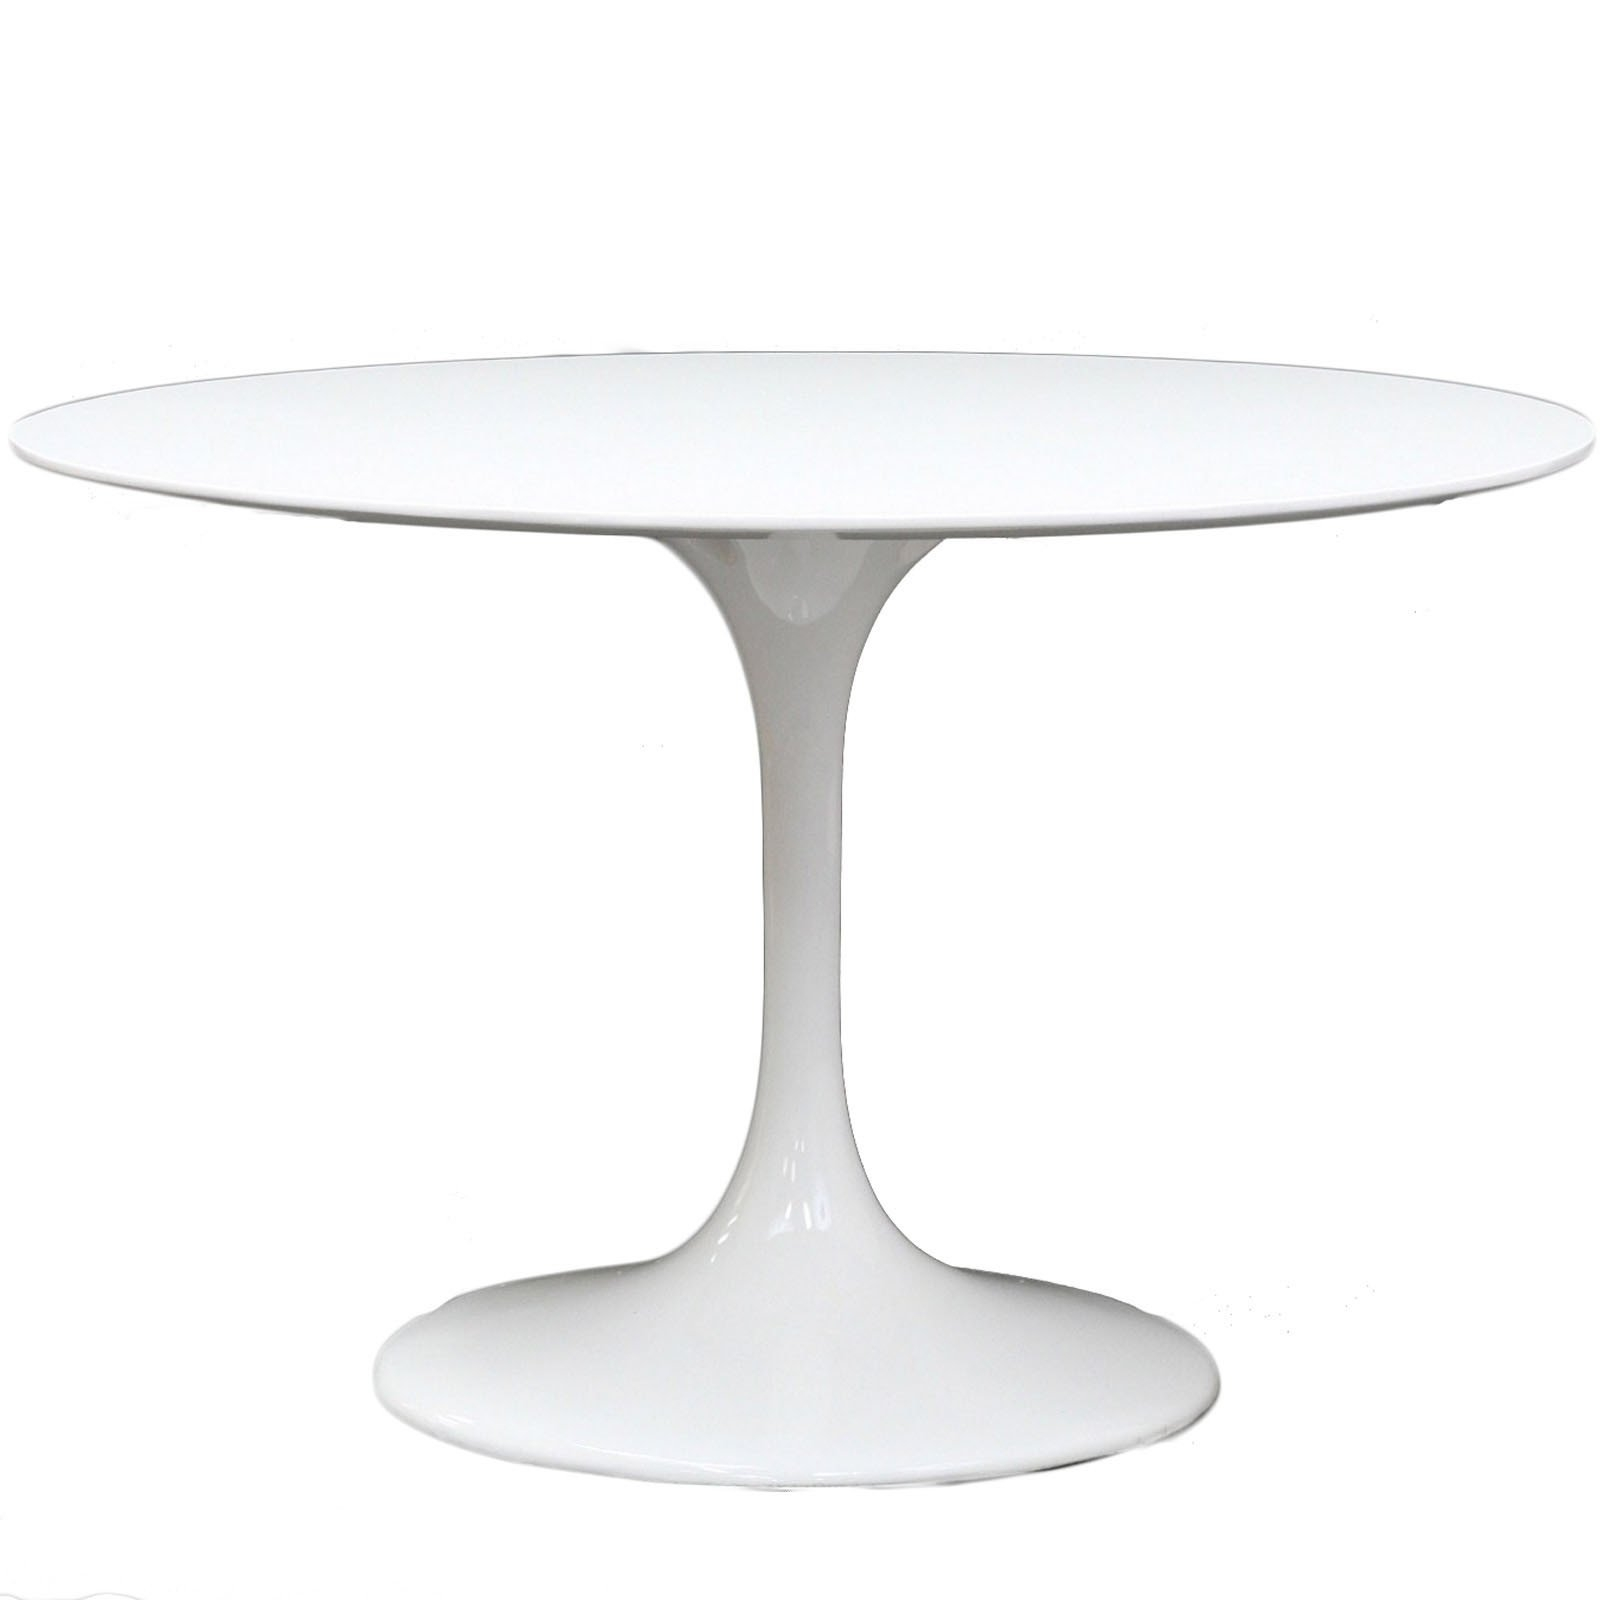 Attrayant Pedestal Base For Round Table